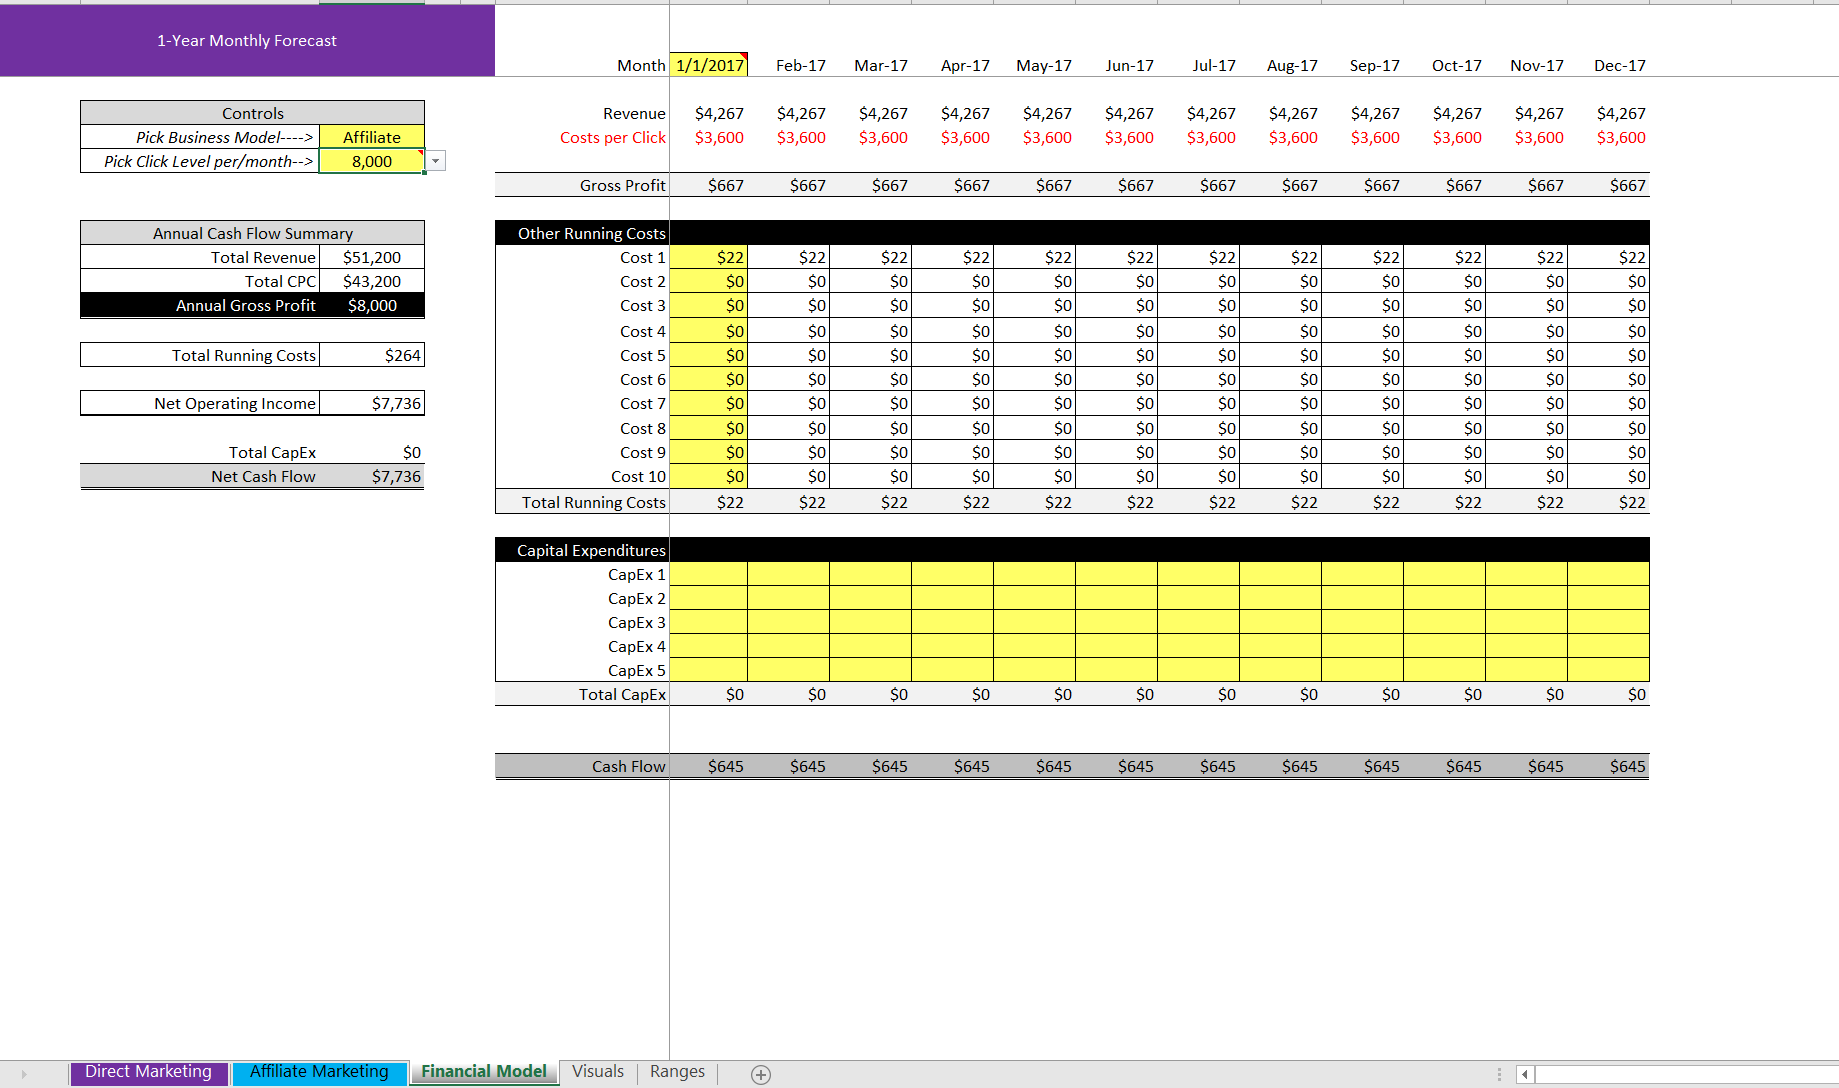 (PPC) - Pay per Click Financial Model and Sensitivity Analysis for Advertisers